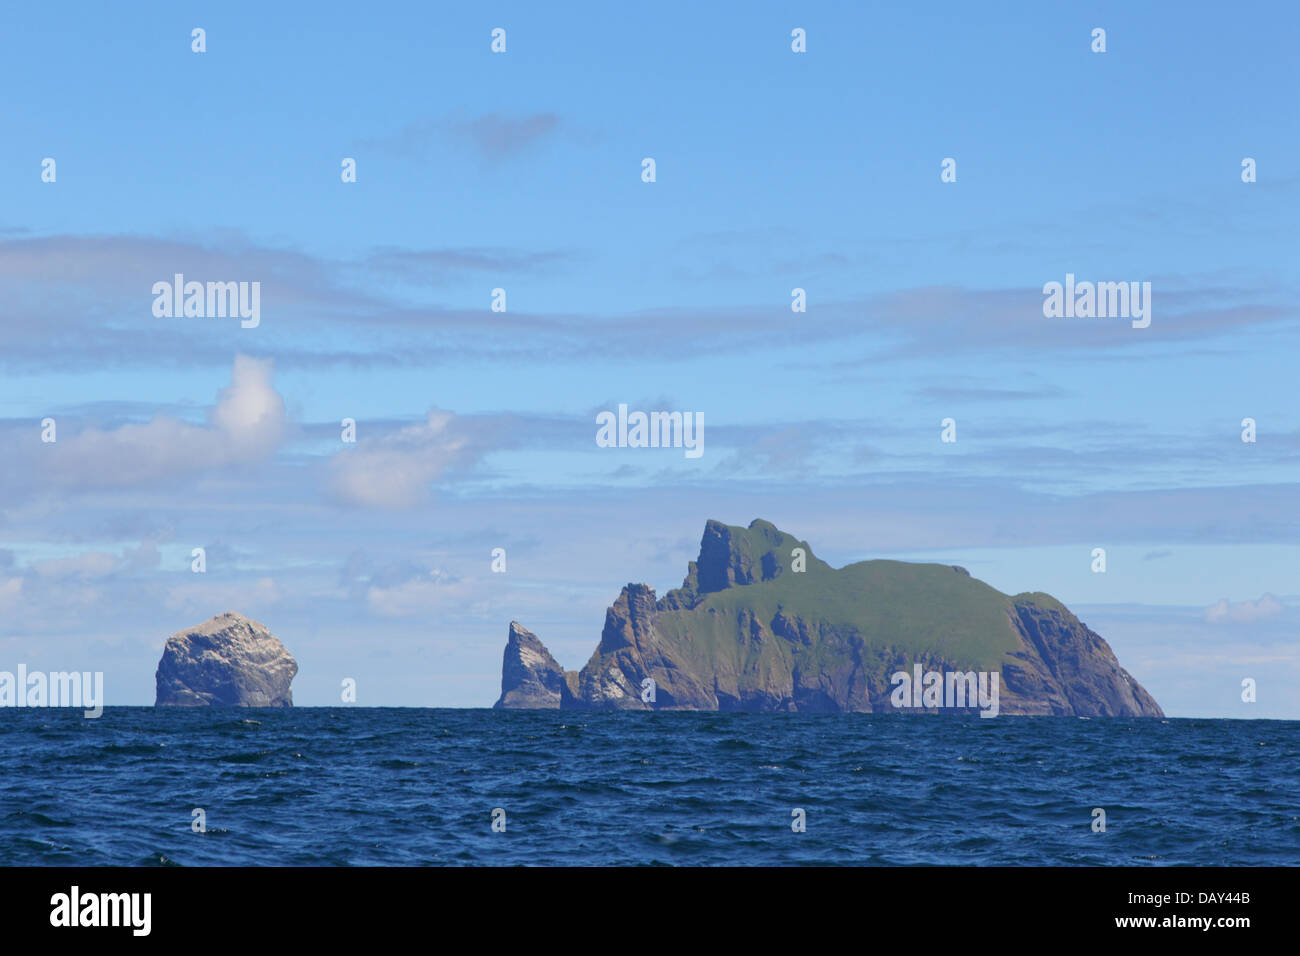 Stac Lee, Stac an Armin and Boreray Islands. Gannet colony. St. Kilda Archipelago. Outer Hebrides. Scotland, UK - Stock Image